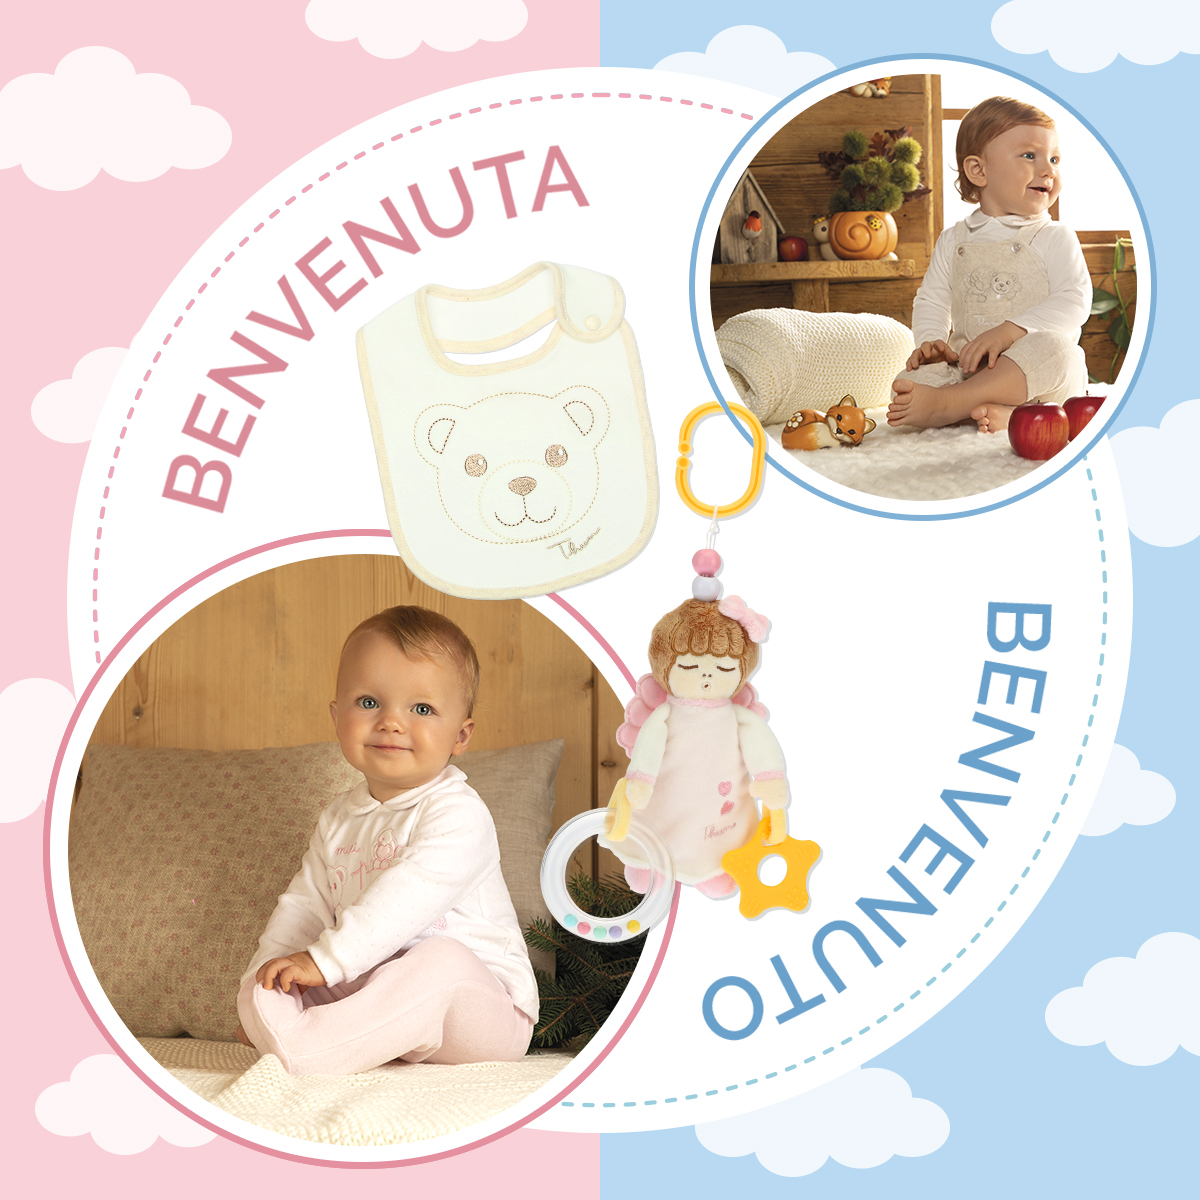 Idee top per il baby shower di settembre